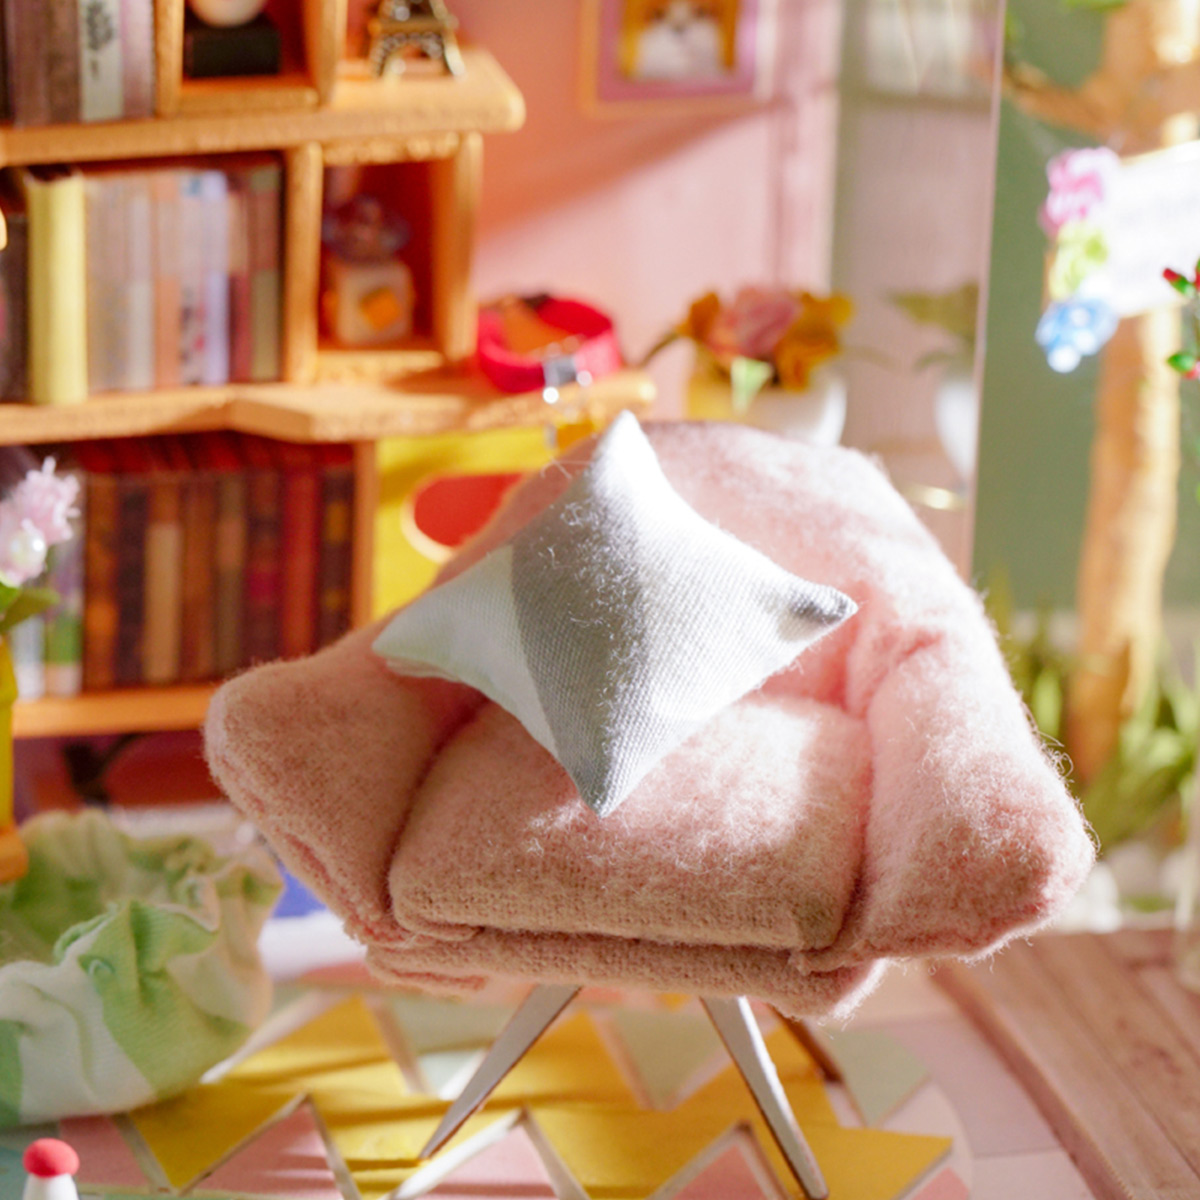 Rolife Miniature DG12 Dora's Loft detail display with vivid and colorful design